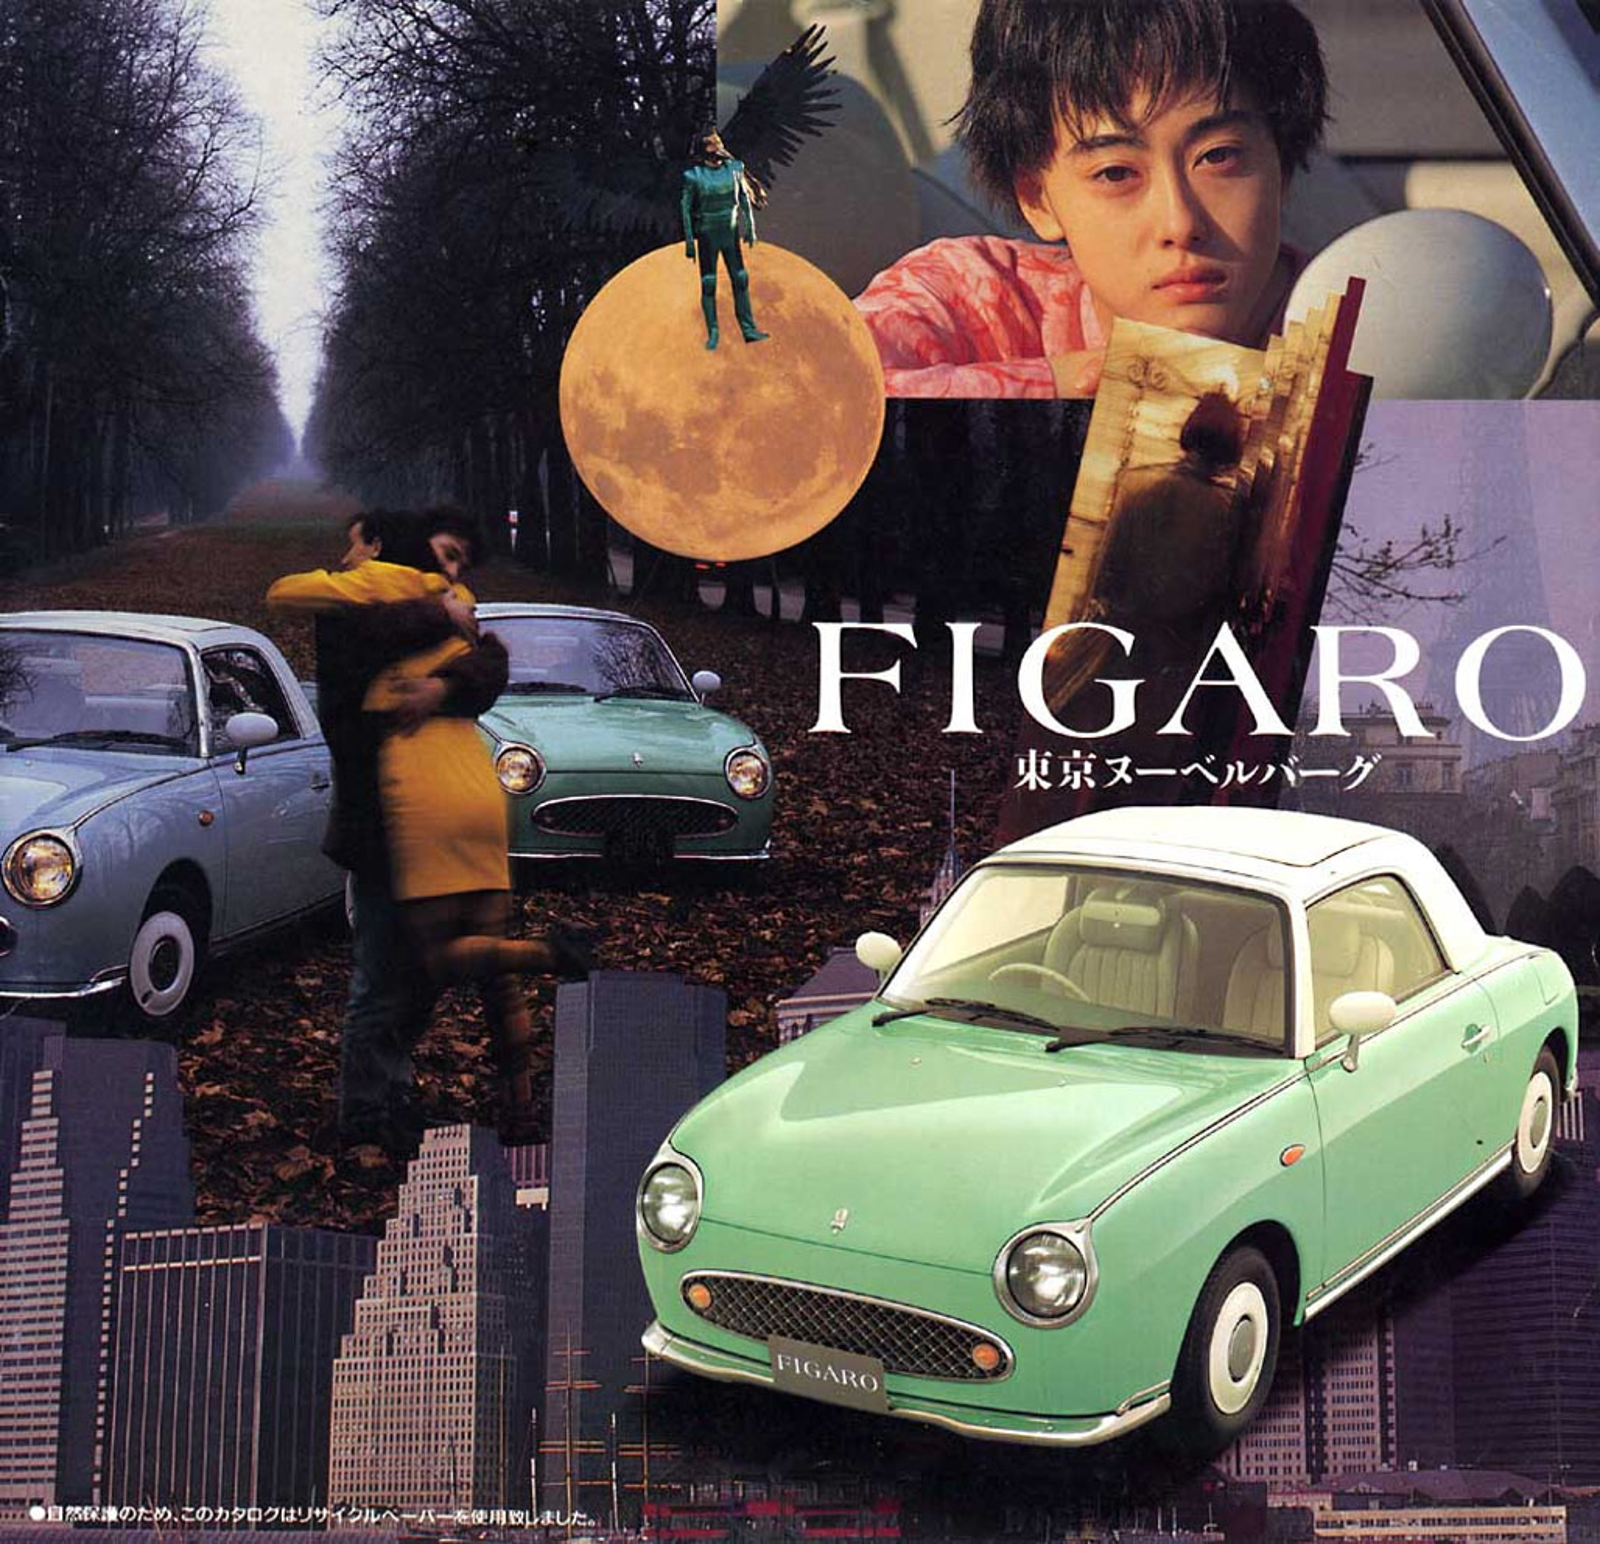 The Nissan Figaro brochure. It is a joy. What I haven't found is the film produced for its launch by Nissan. Anyone have a copy?